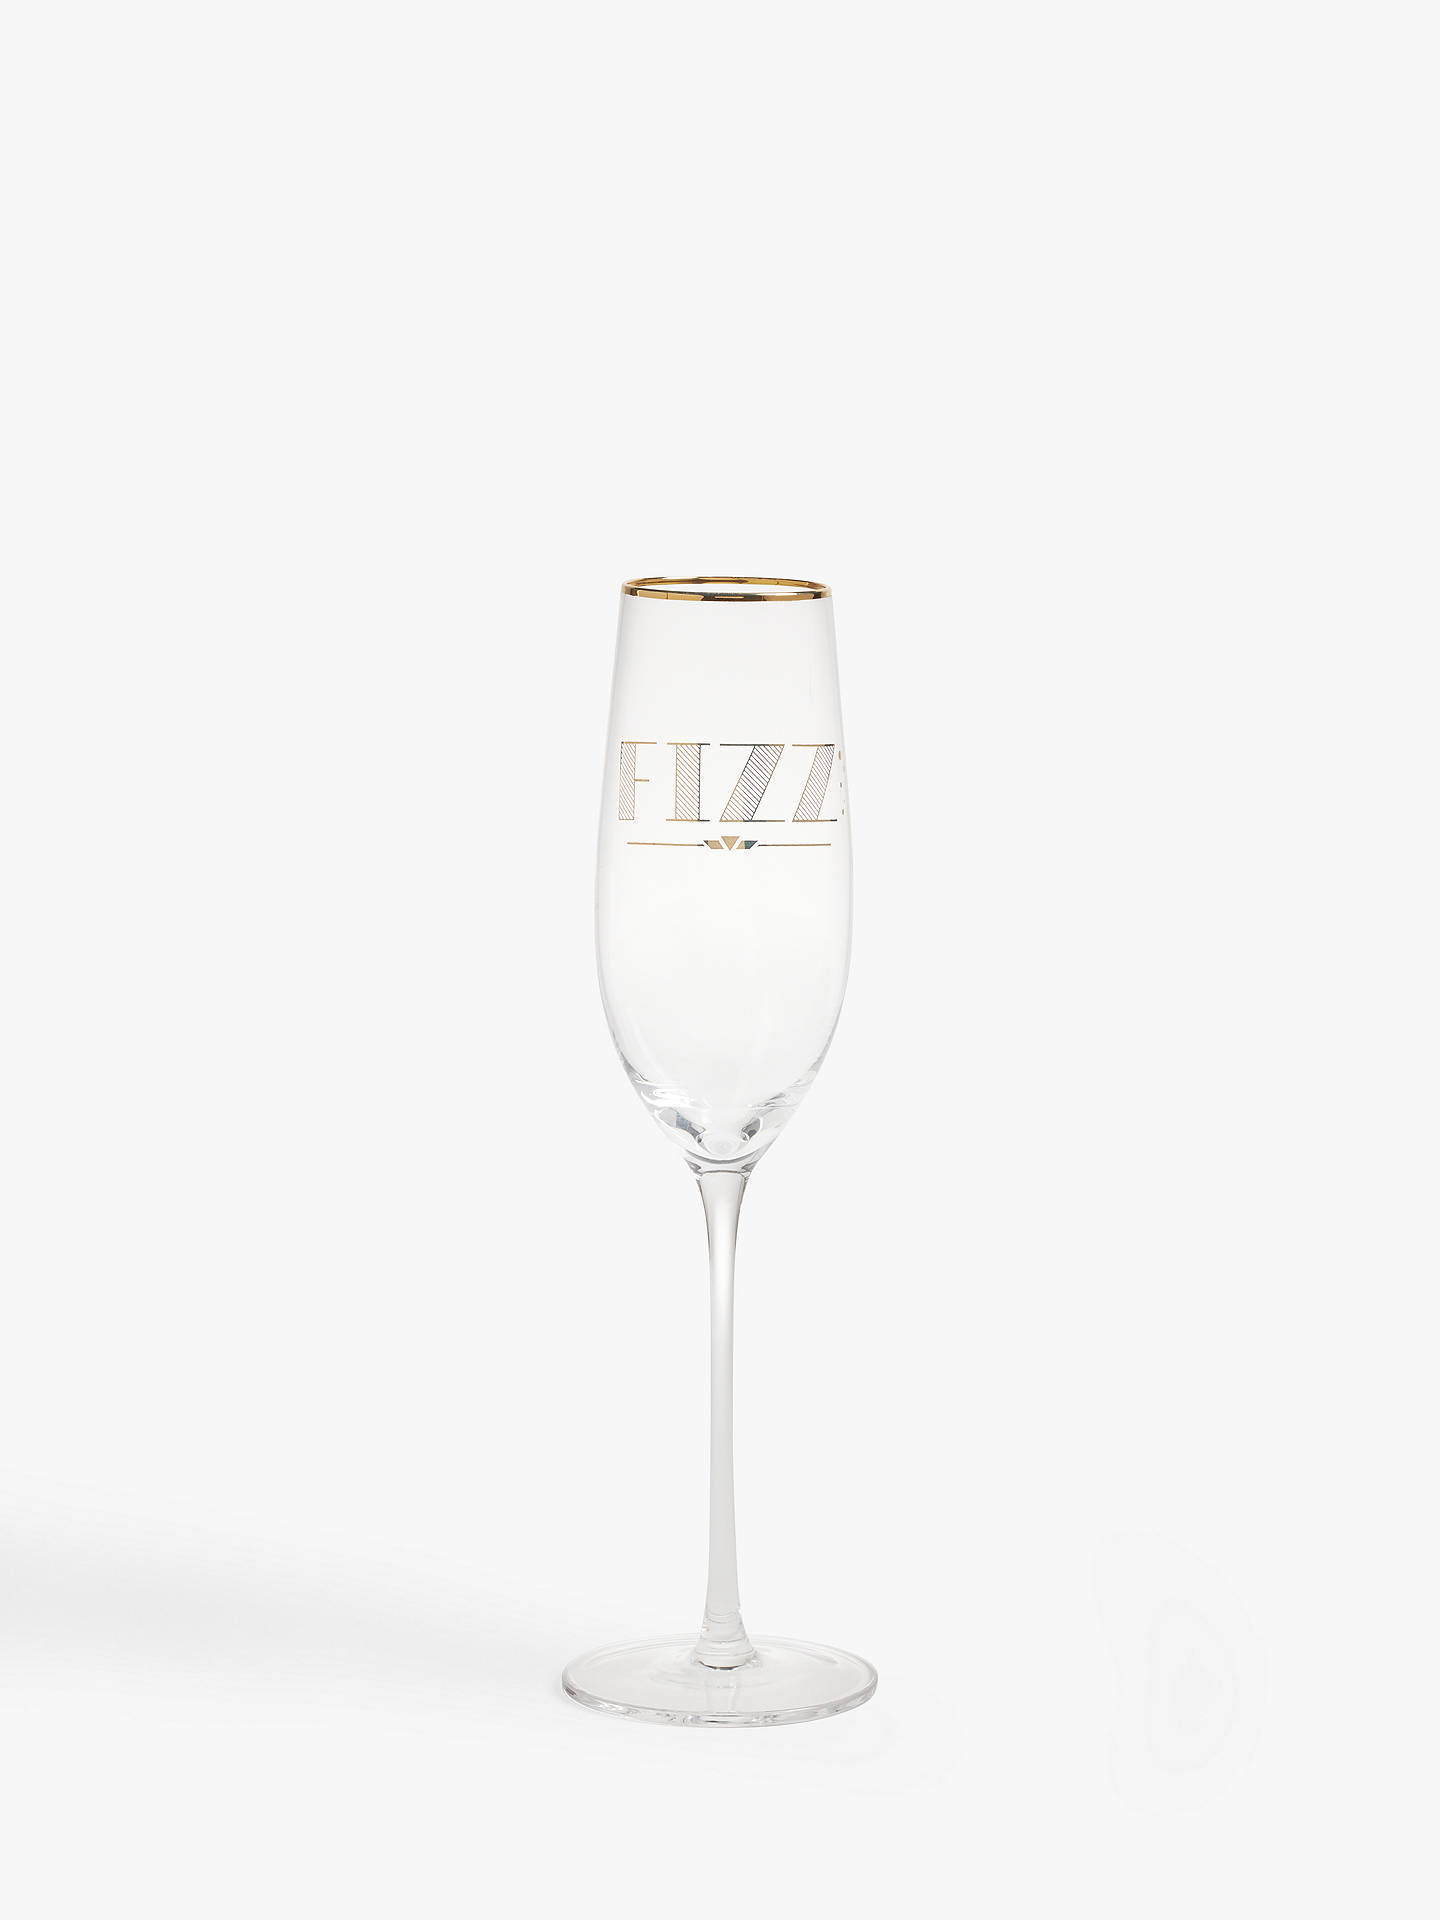 Buy John Lewis & Partners Art Deco 'Fizz' Slogan Champagne Flute, 220ml, Gold Online at johnlewis.com